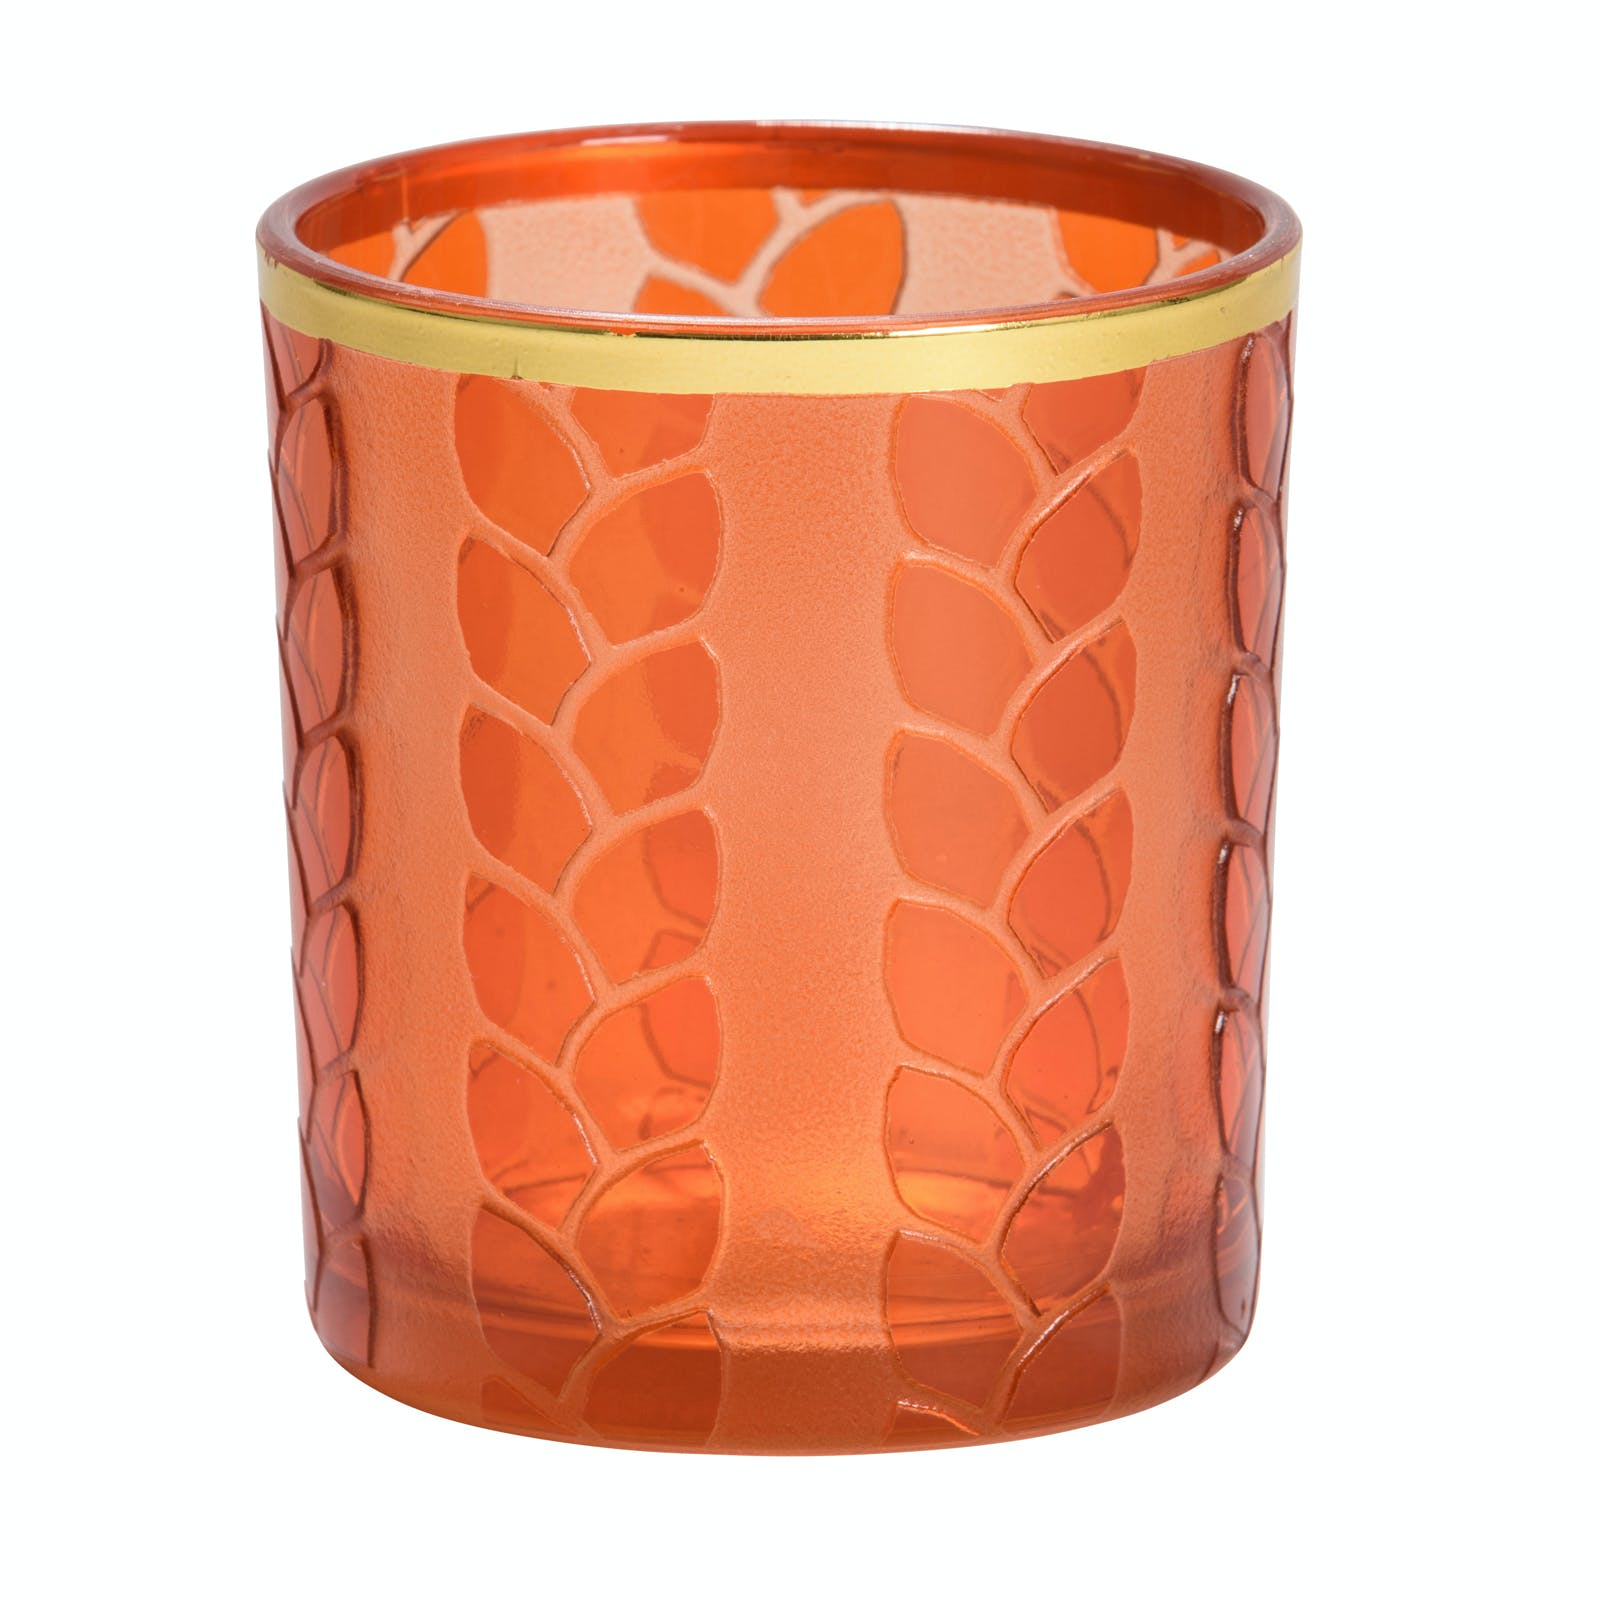 Photophore Orange MAIZE & METAL pour votive YANKEE CANDLE